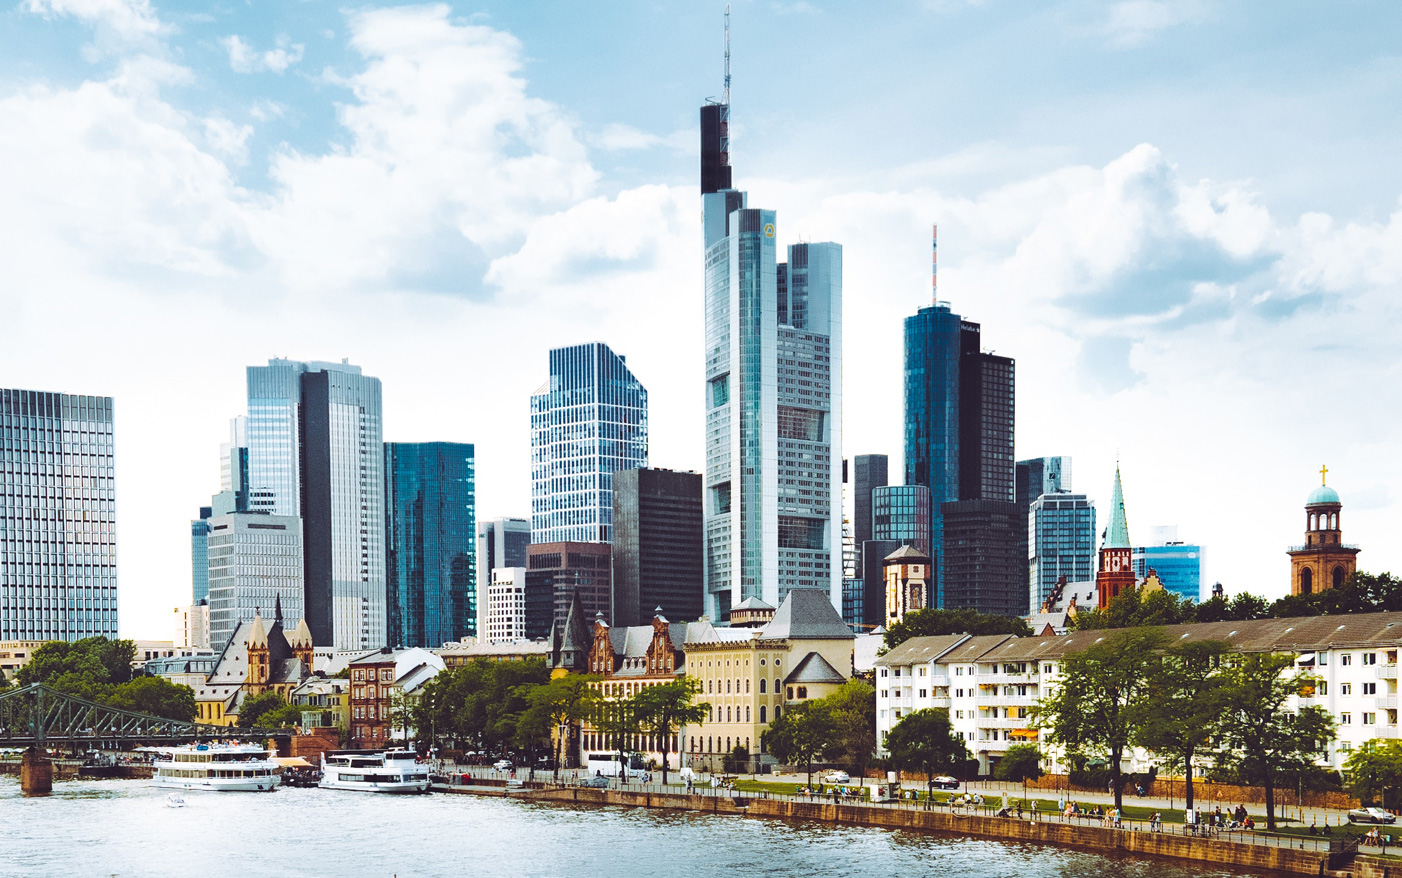 Jenny Morrissey is speaking at the 11th Annual Global Investor Loss Recovery Conference in Frankfurt